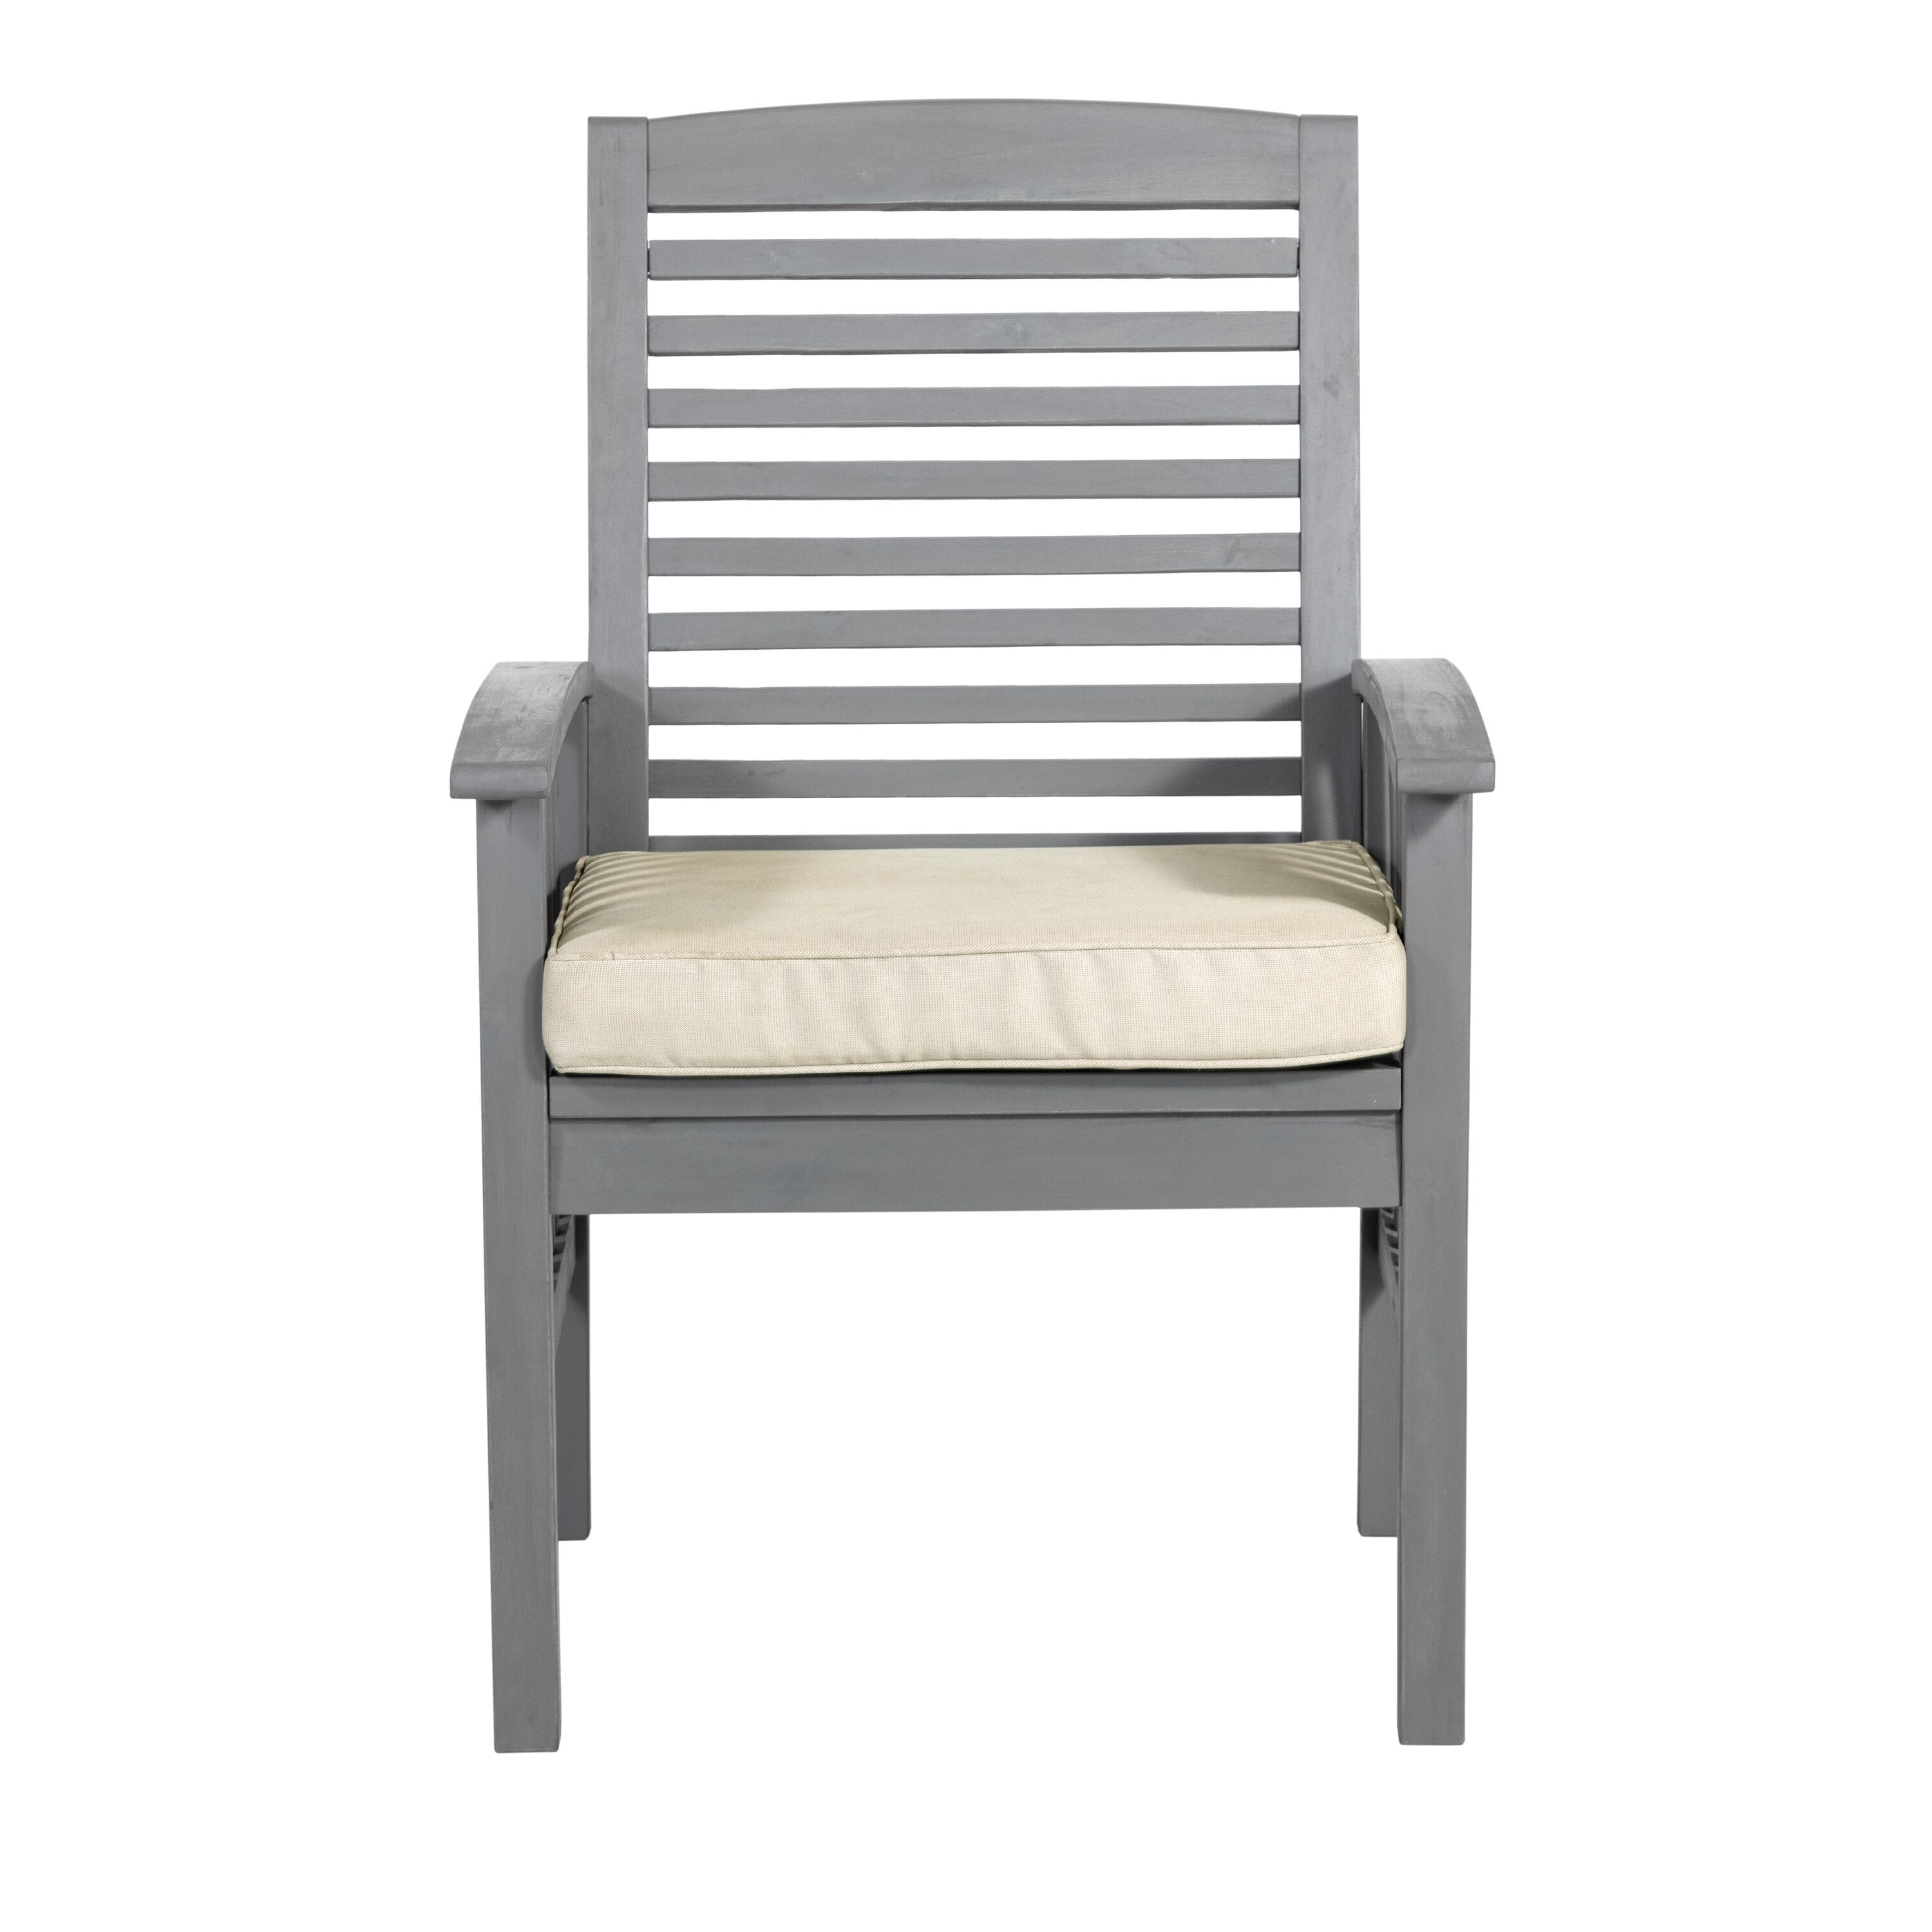 acacia wood patio chairs with cushions set of 2 grey wash by walker edison